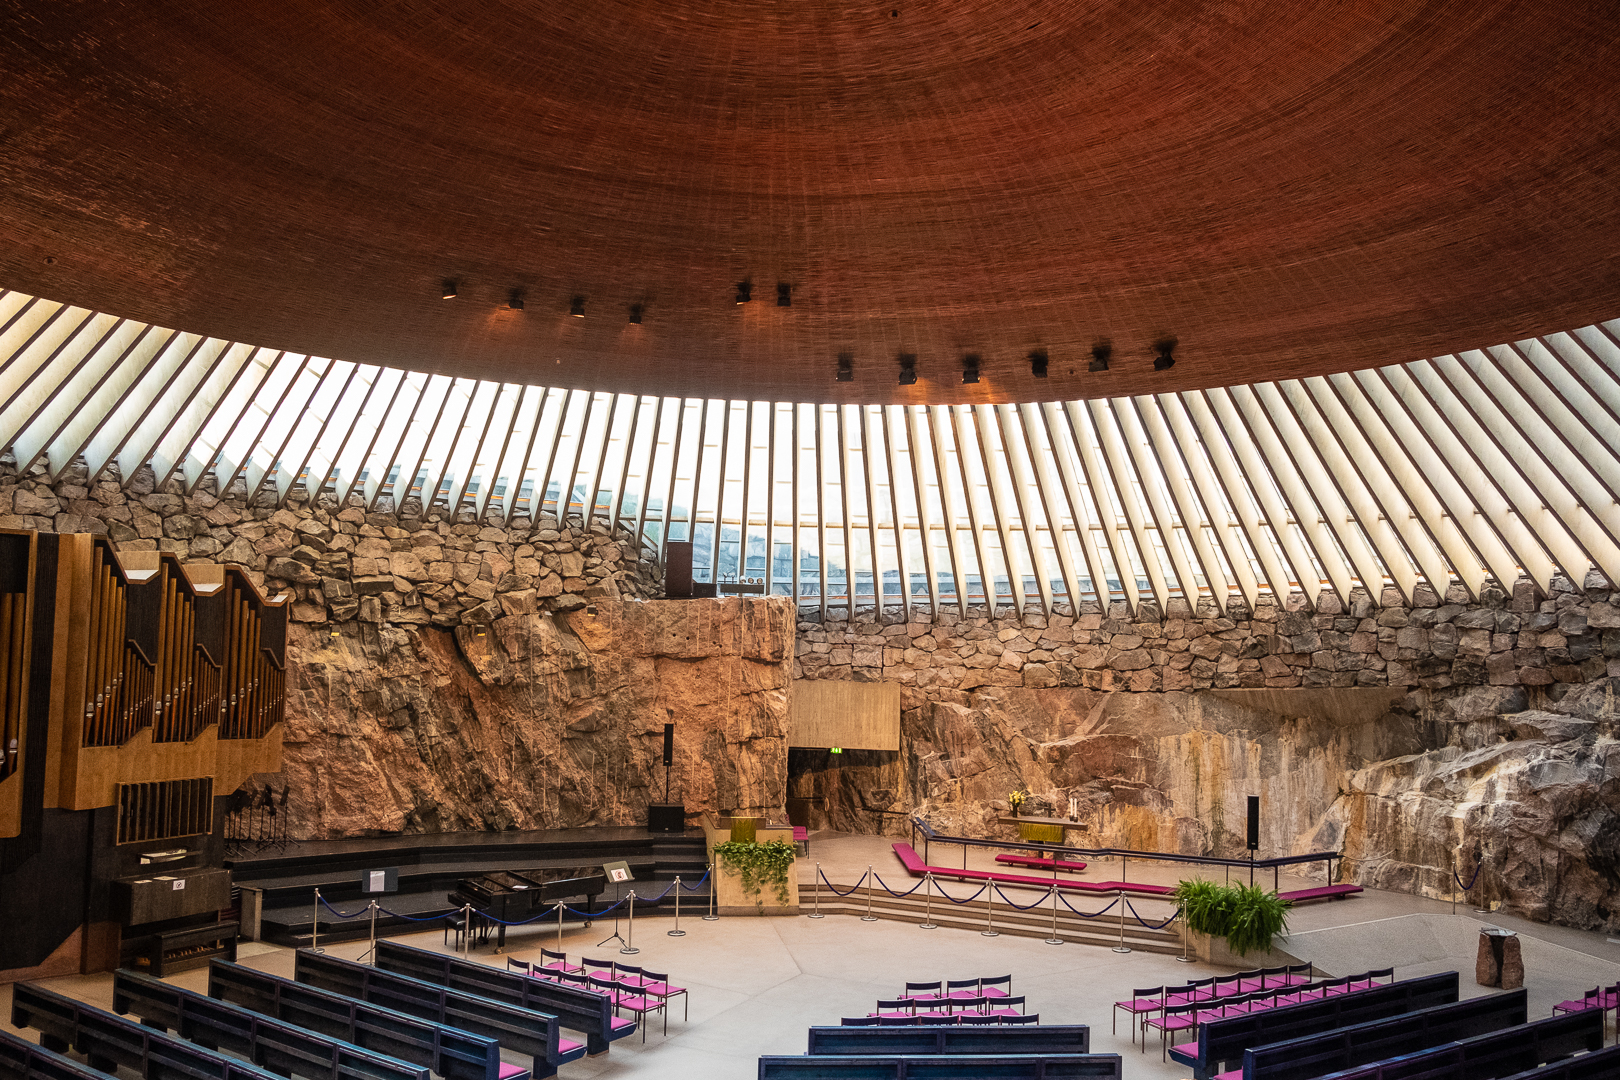 Temppeliaukion Kirkko - the materialization of the Finnish ideal of spirituality in nature. Also known as Rock Church.